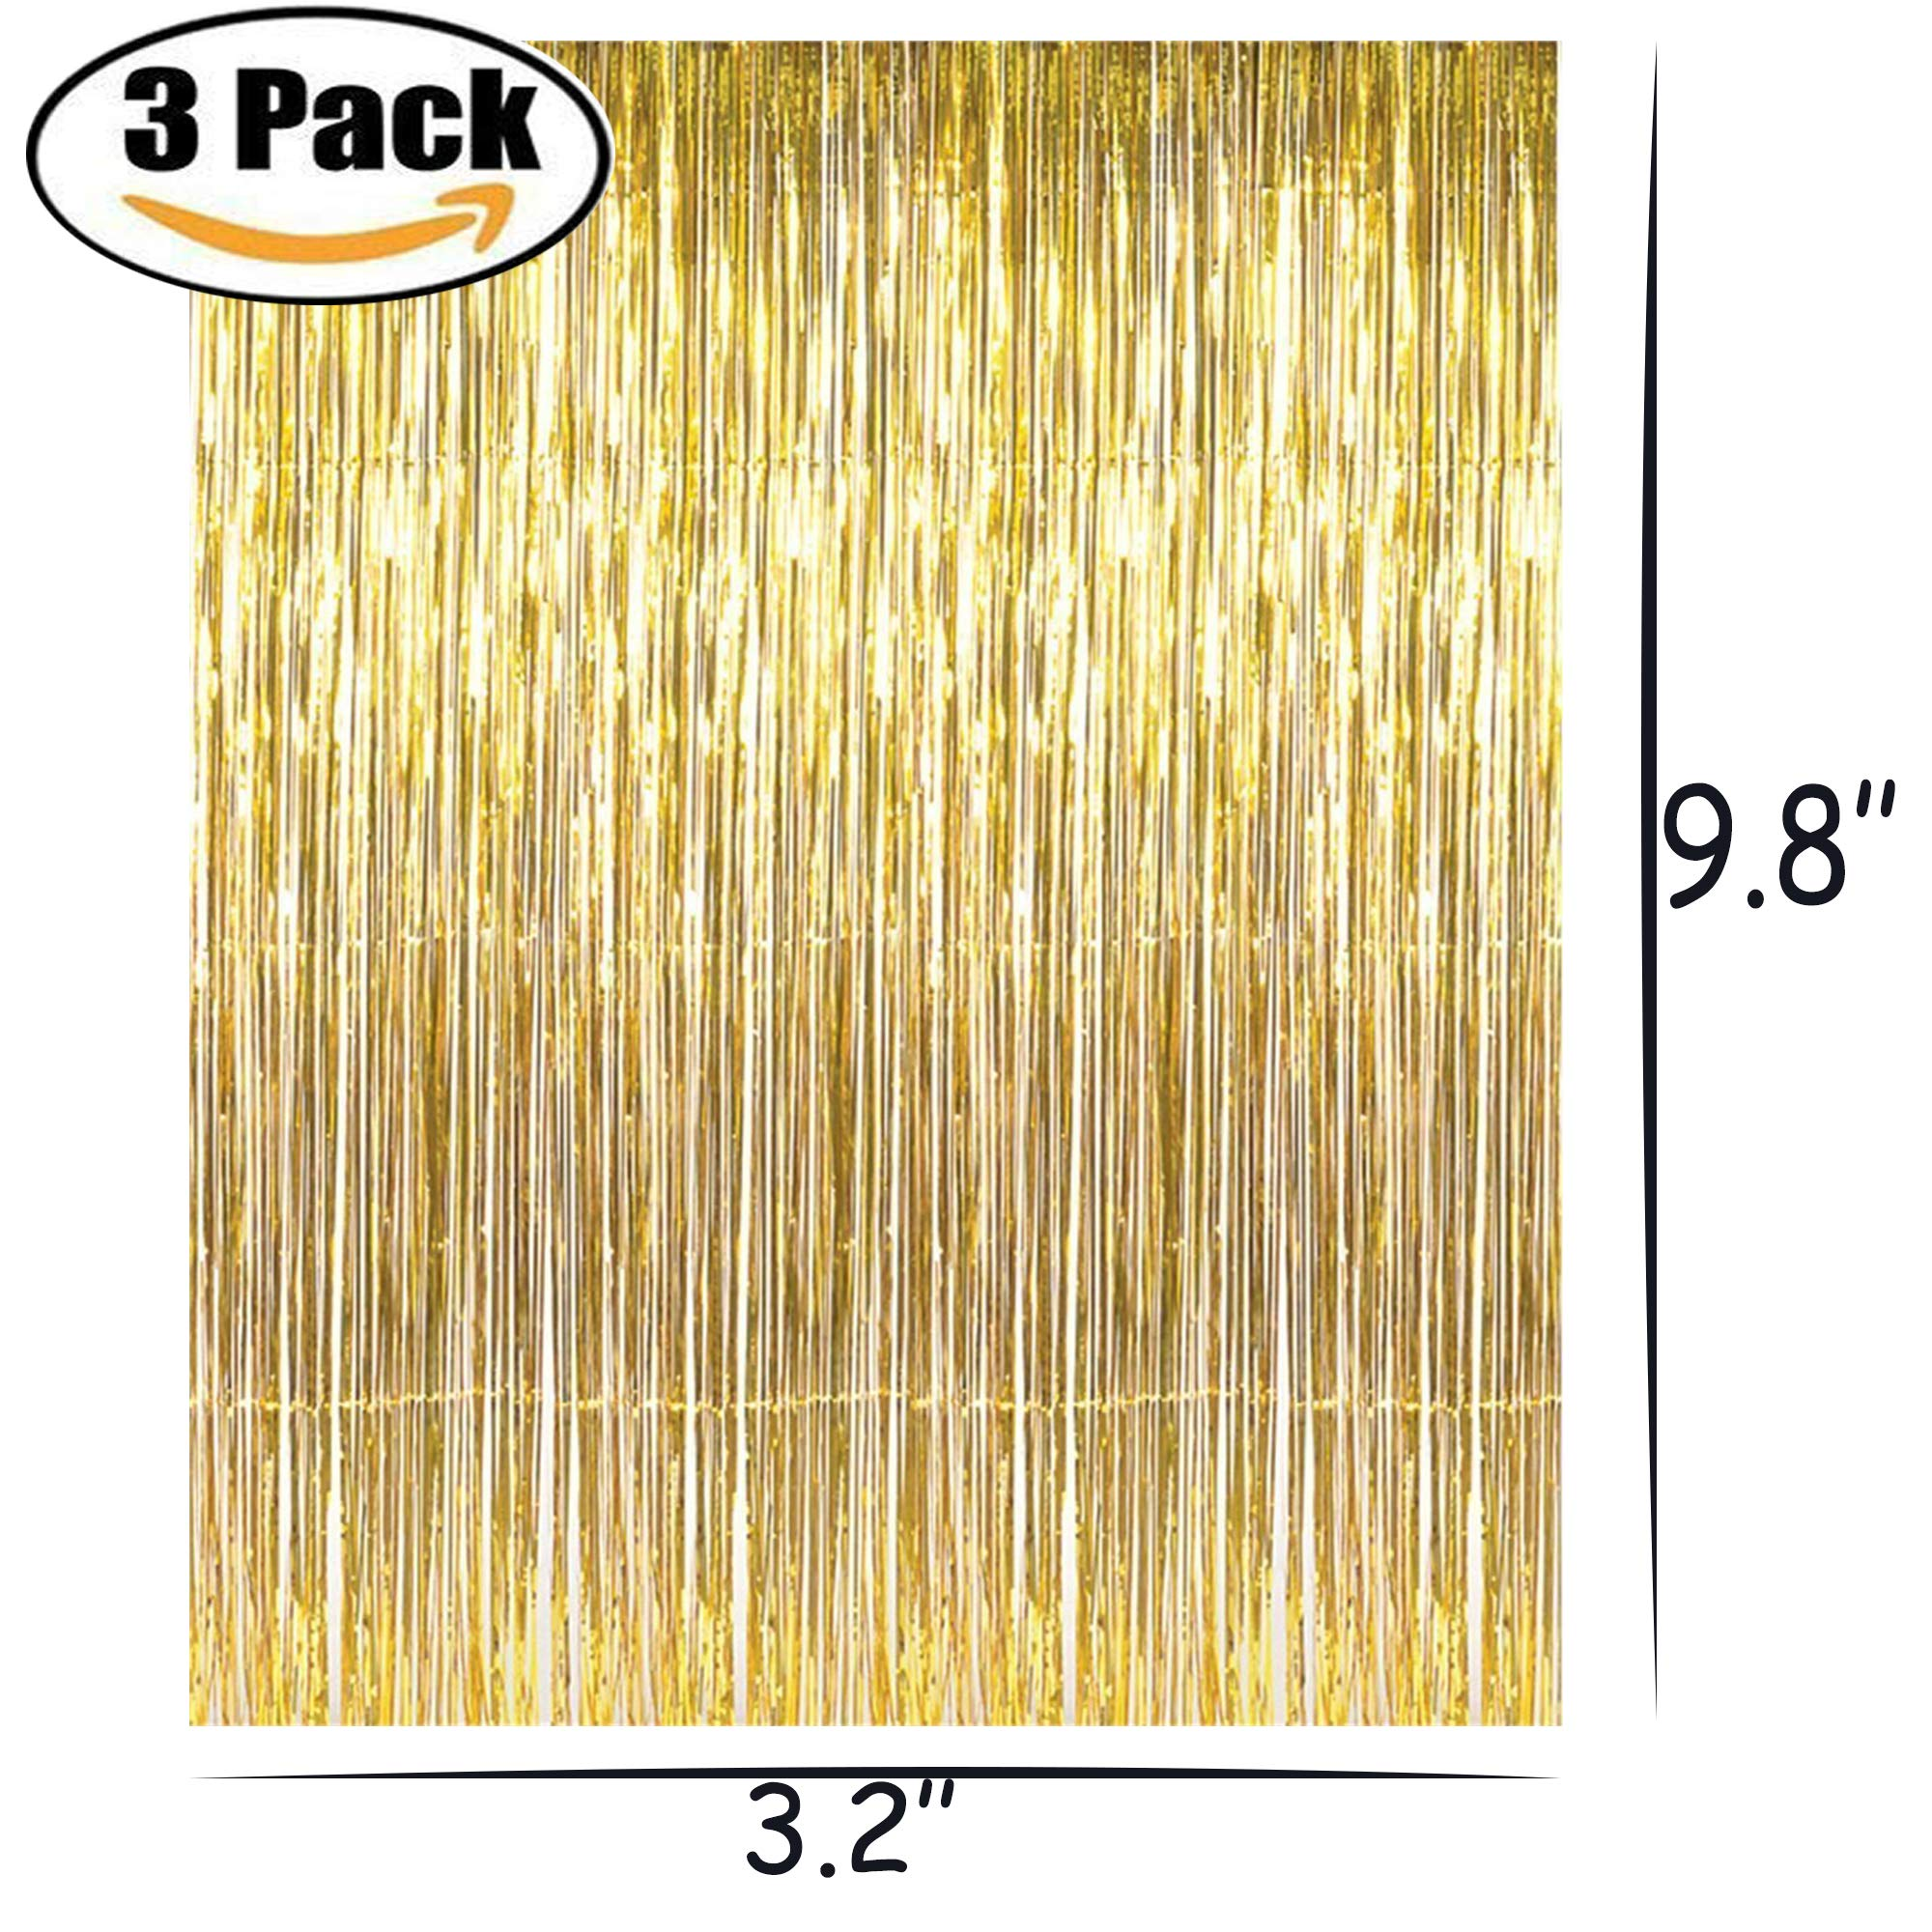 Originalidad 3 Pack 3.2 ft x 9.8 ft Metallic Gold Foil Fringe Shiny Curtains Party, Prom, Birthday, Wedding Party Christmas Decorations